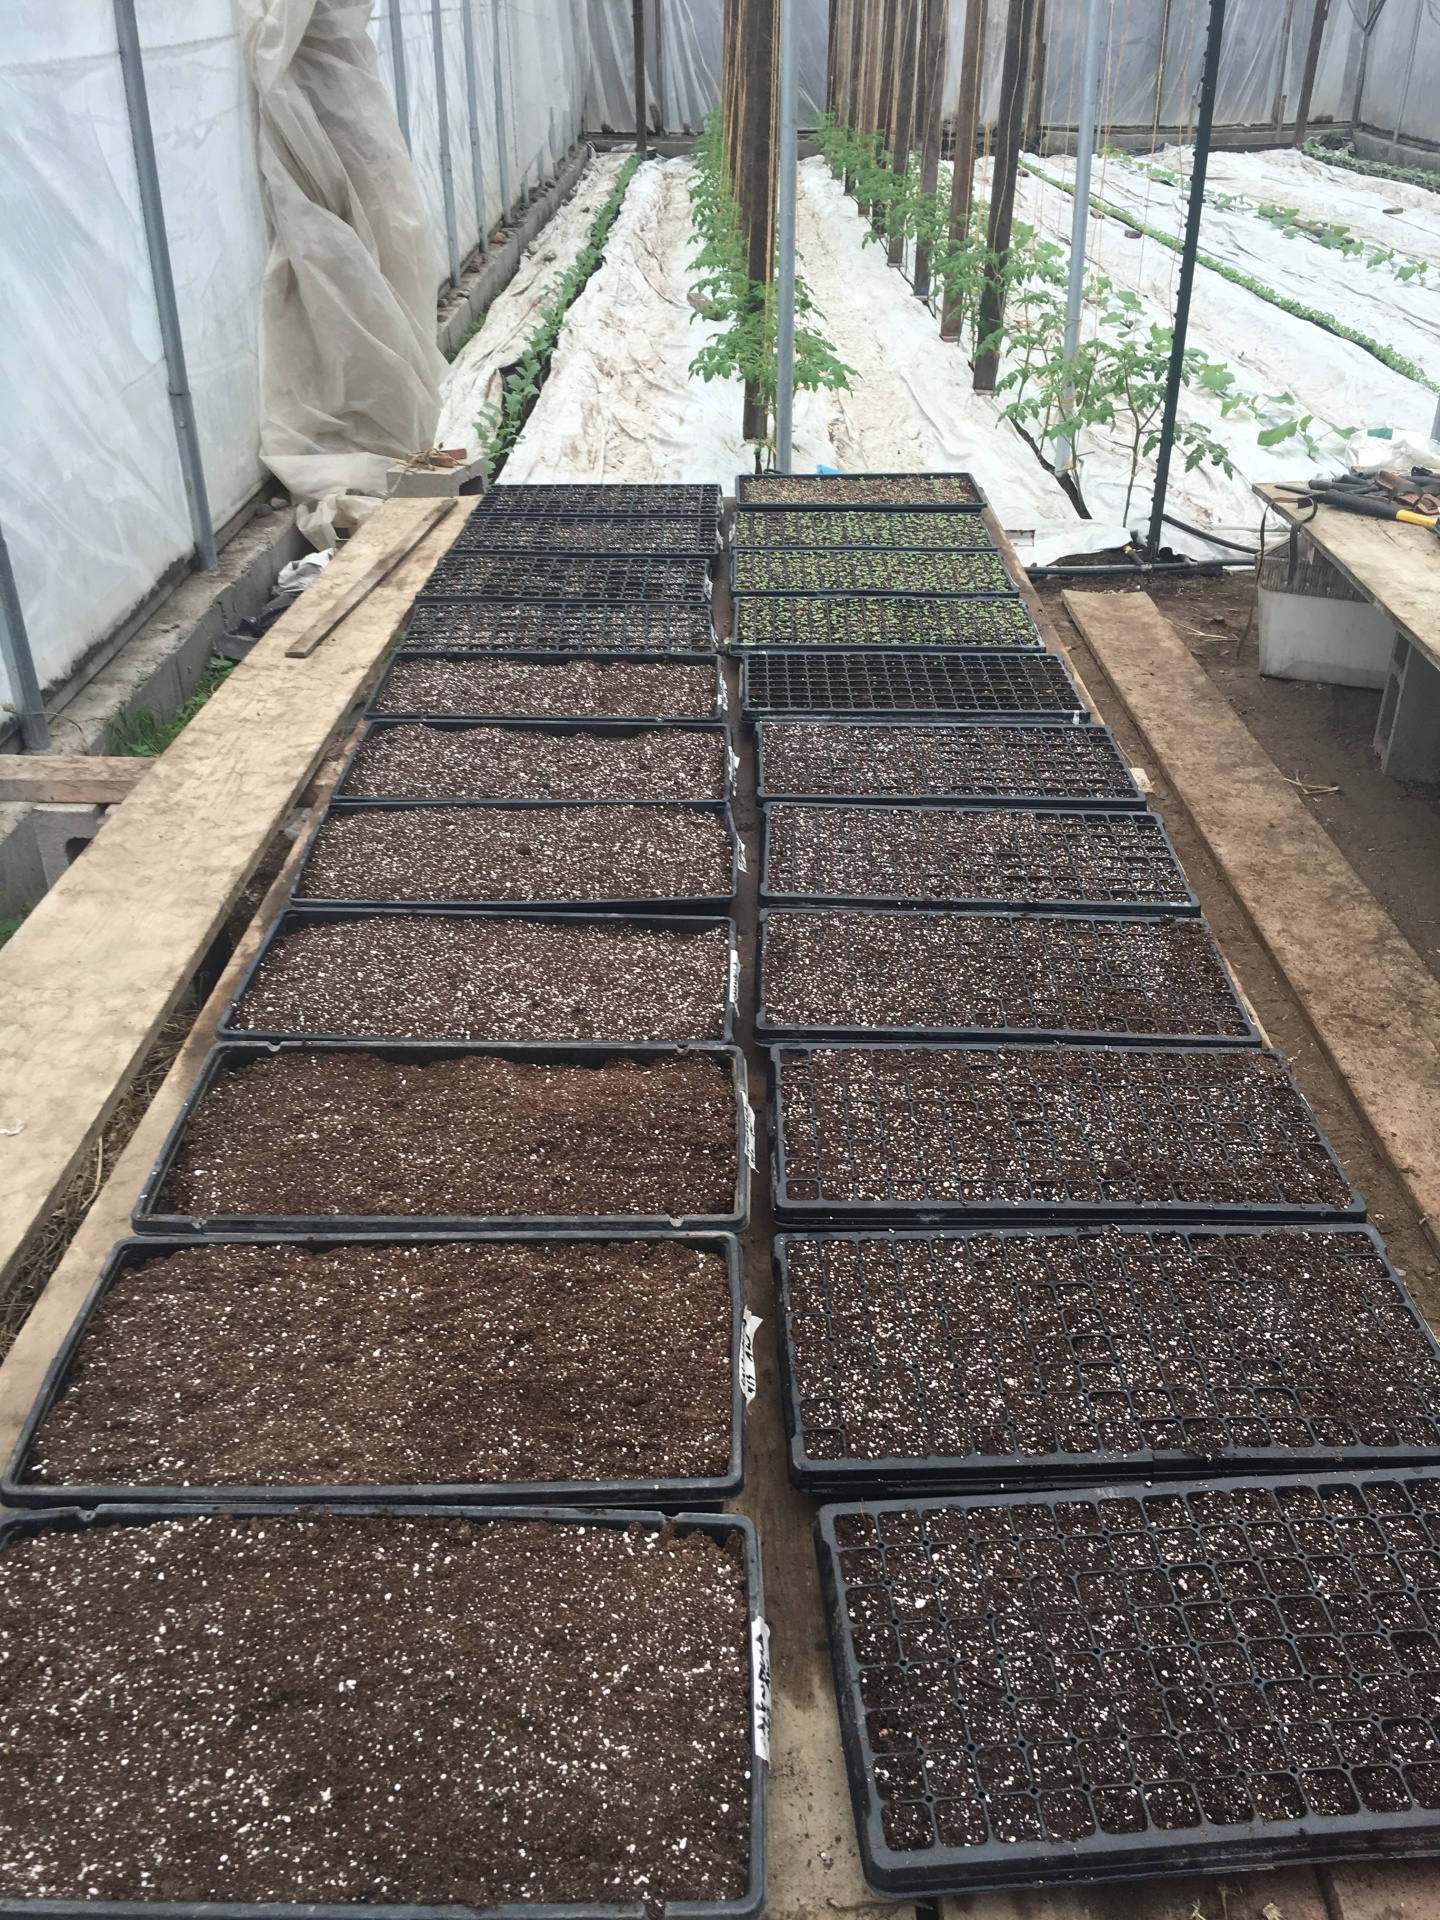 Seed Trays of Herbs